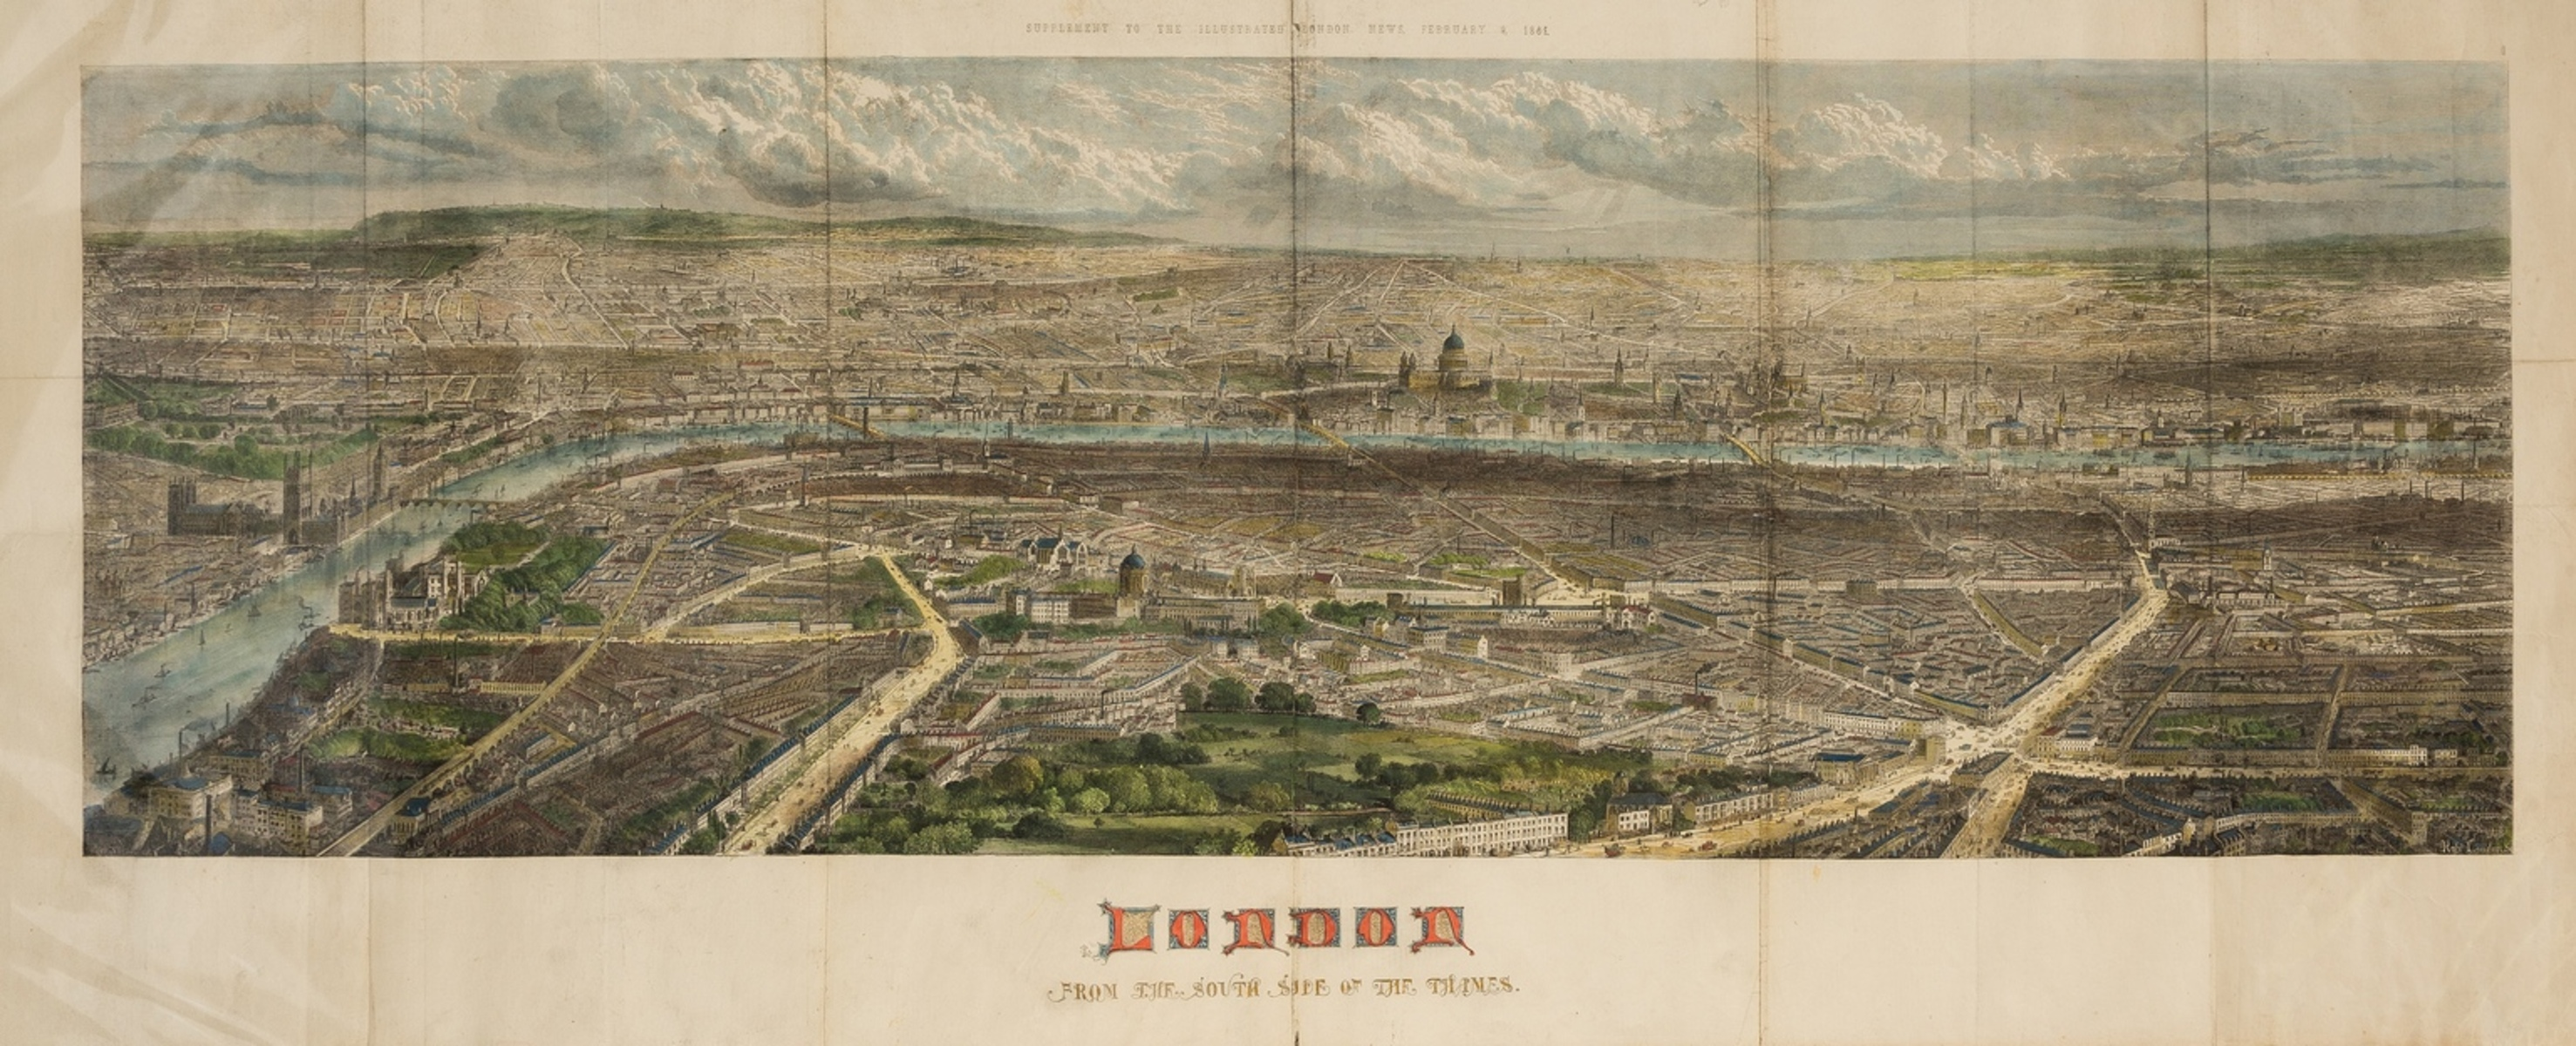 London.- Illustrated London News (The) London from the South Side of the Thames, 1861.